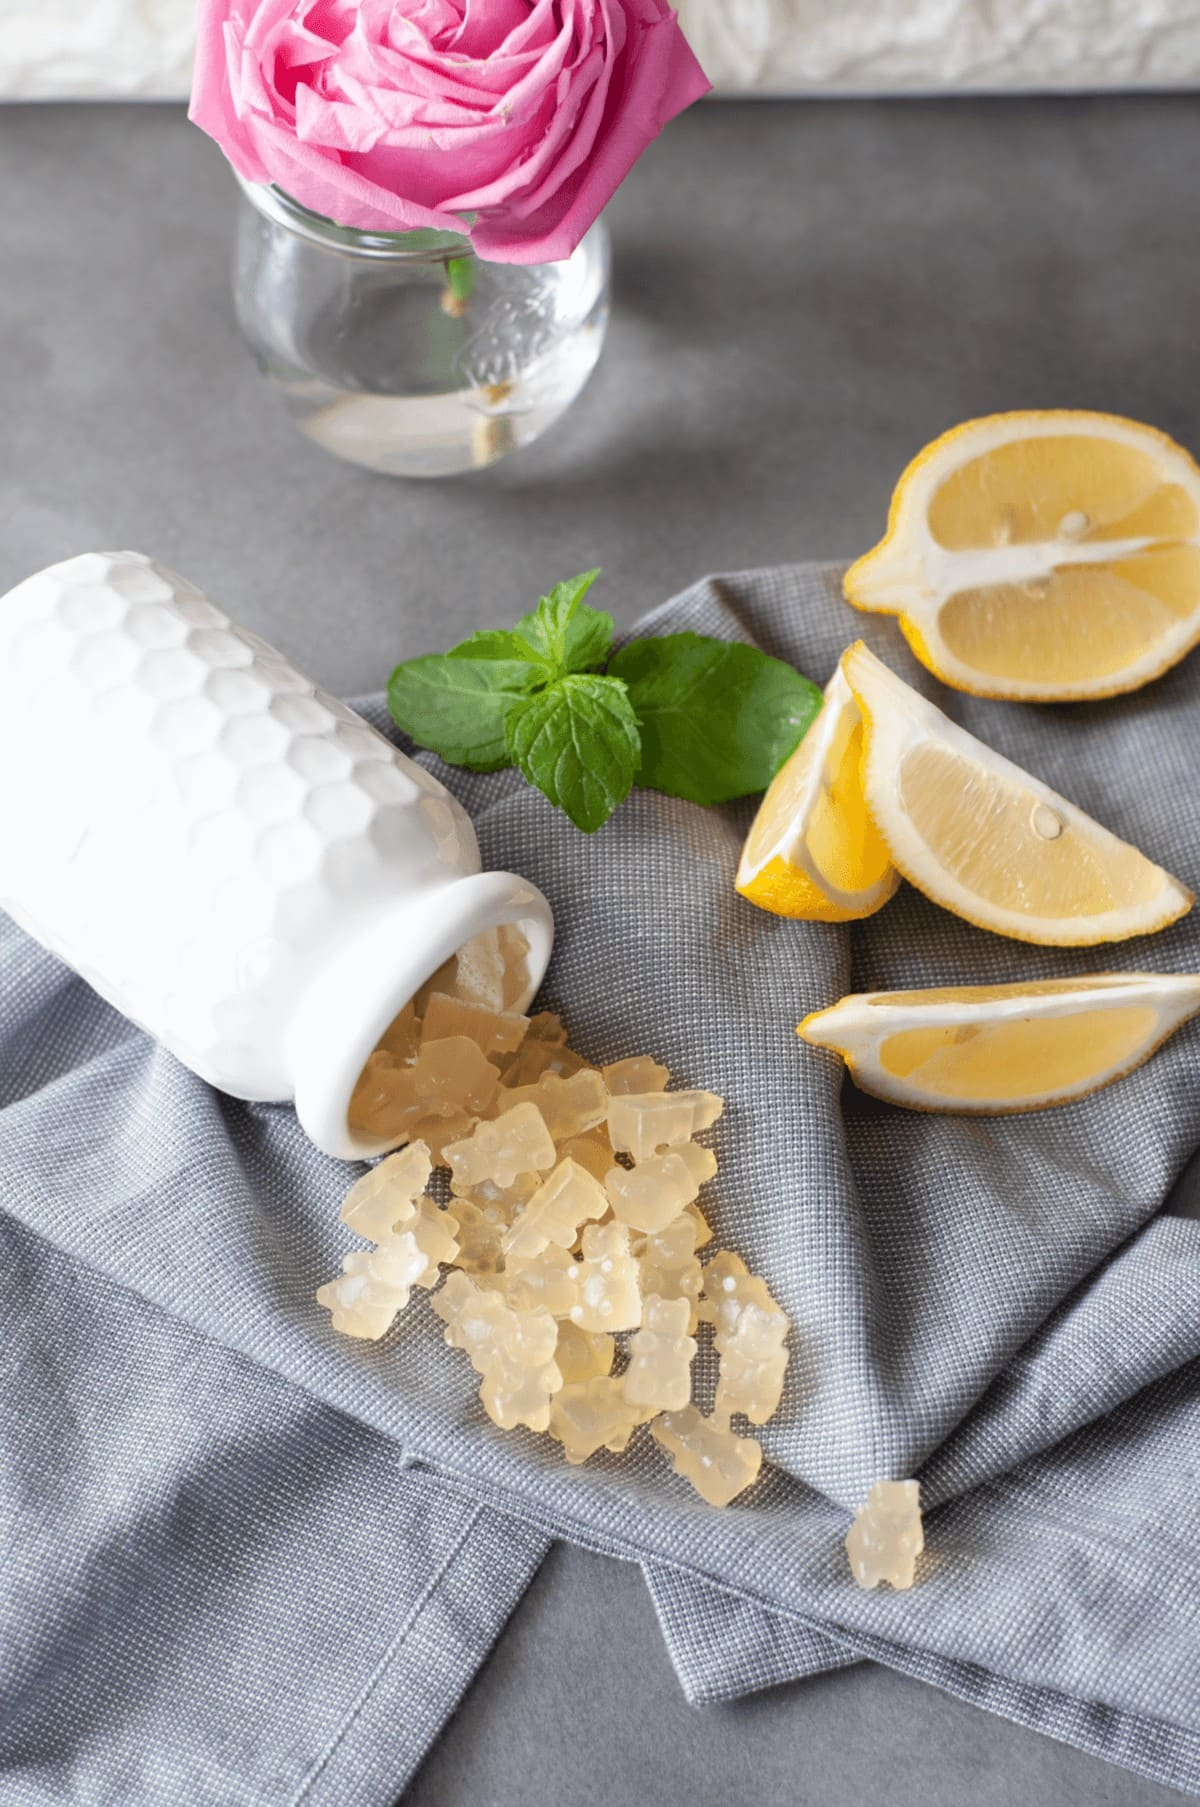 Fresh mint and lemons next to a white jar, spilling out lemon gummy bears onto a gray napkin.